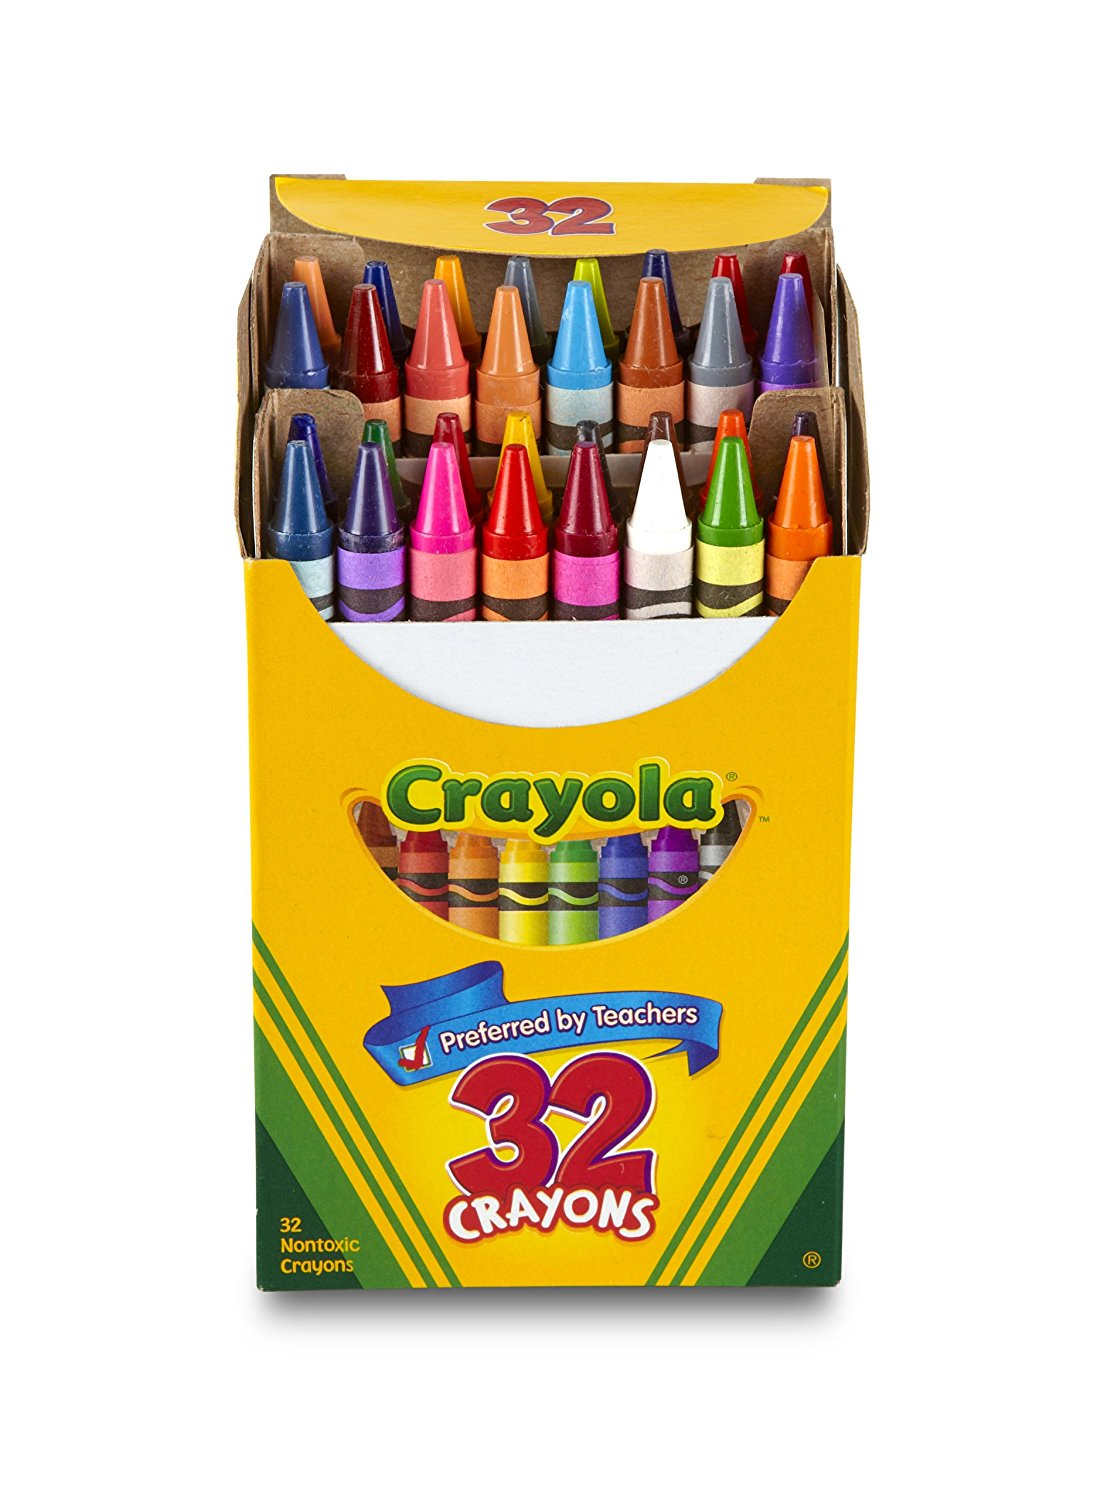 1104x1500 Crayola 32 Count Crayons Tuck Box Toys Amp Games